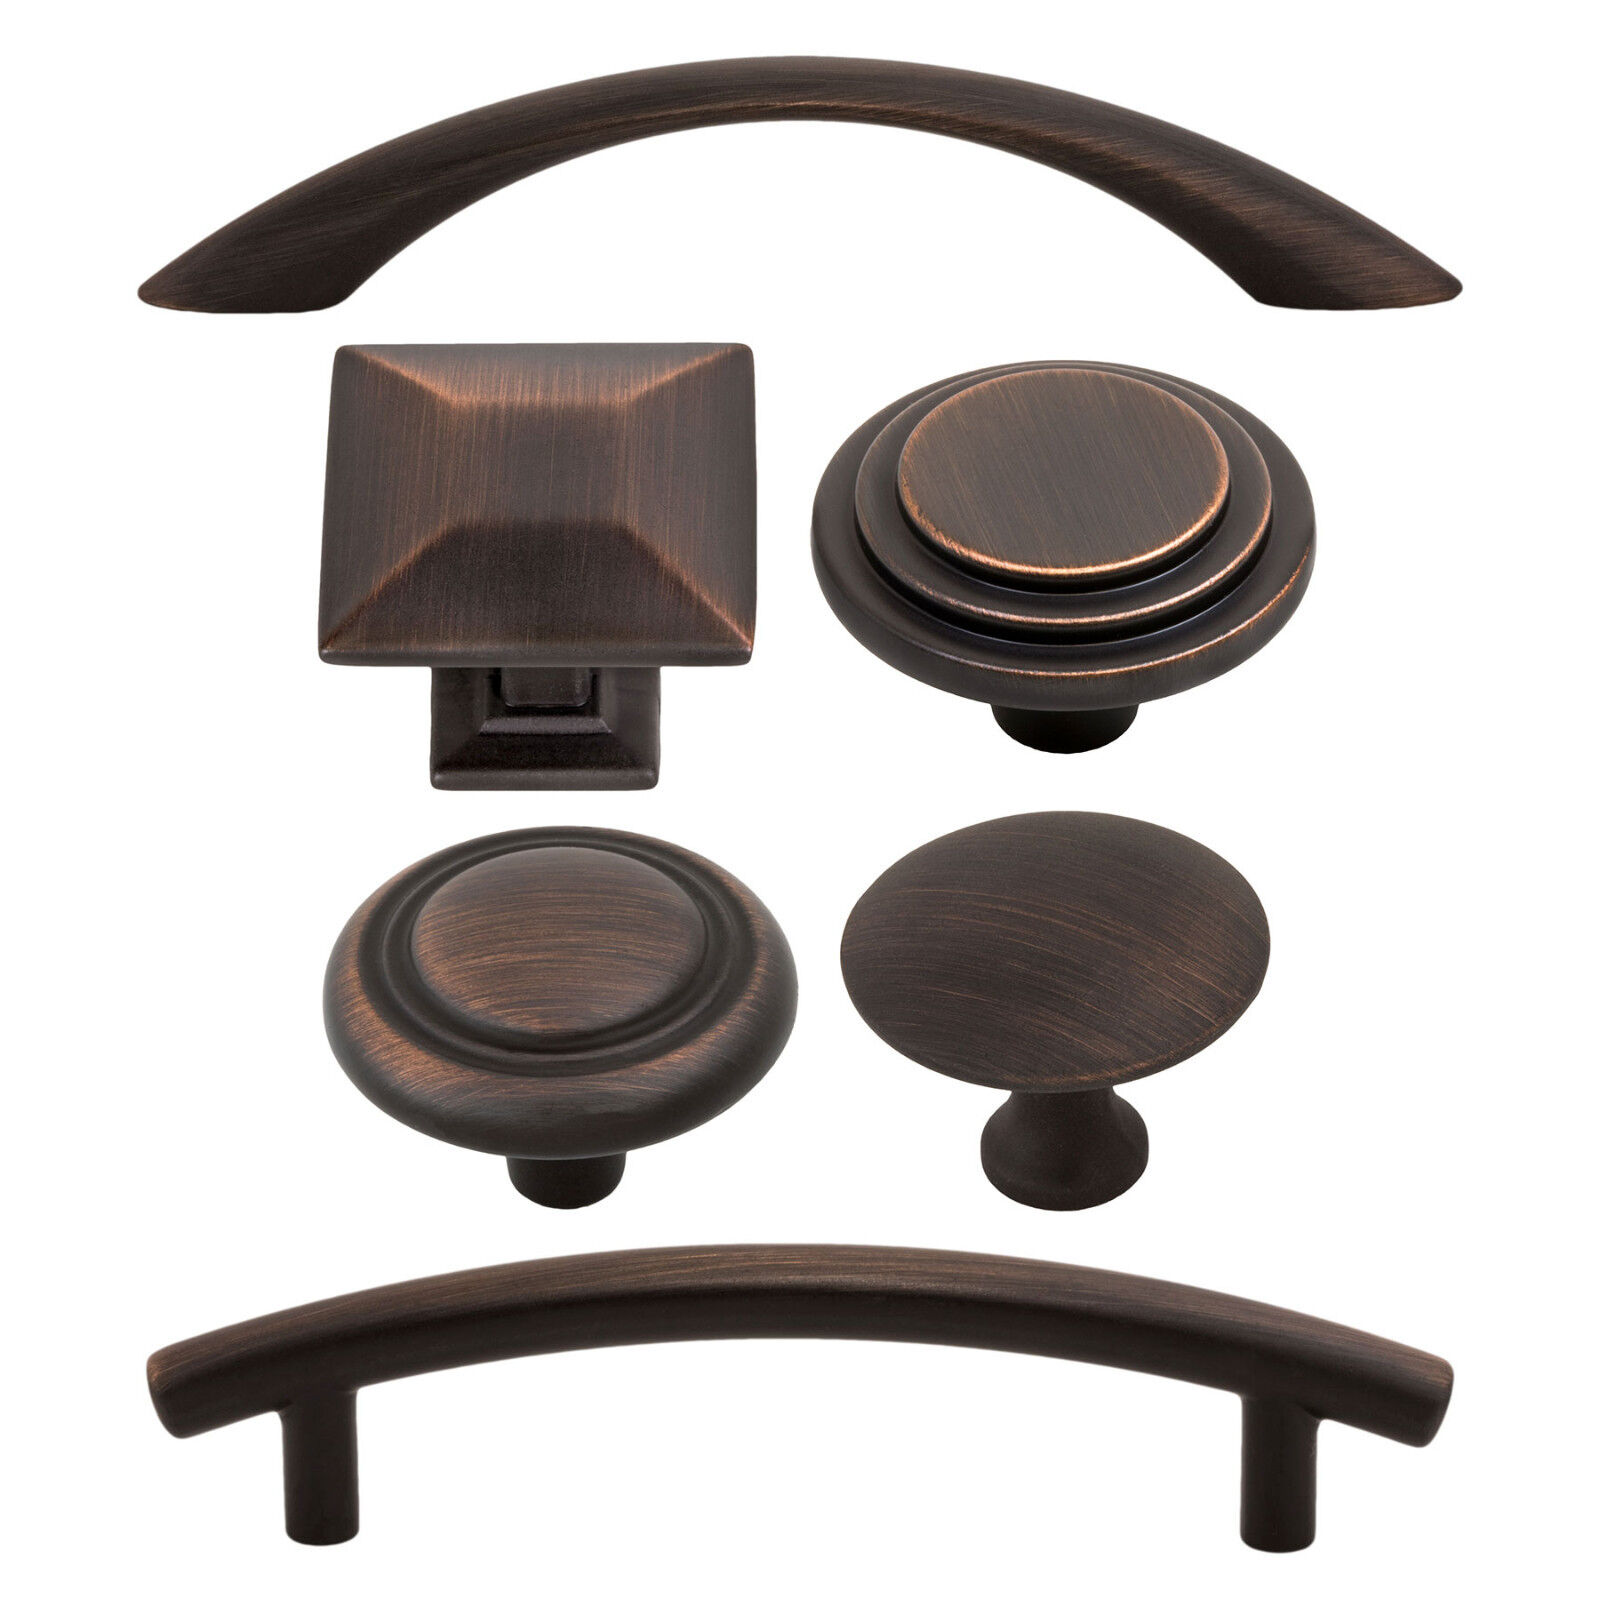 Classic and Modern Kitchen Bath Cabinet Hardware Knobs Pulls, Oil Rubbed Bronze Building & Hardware